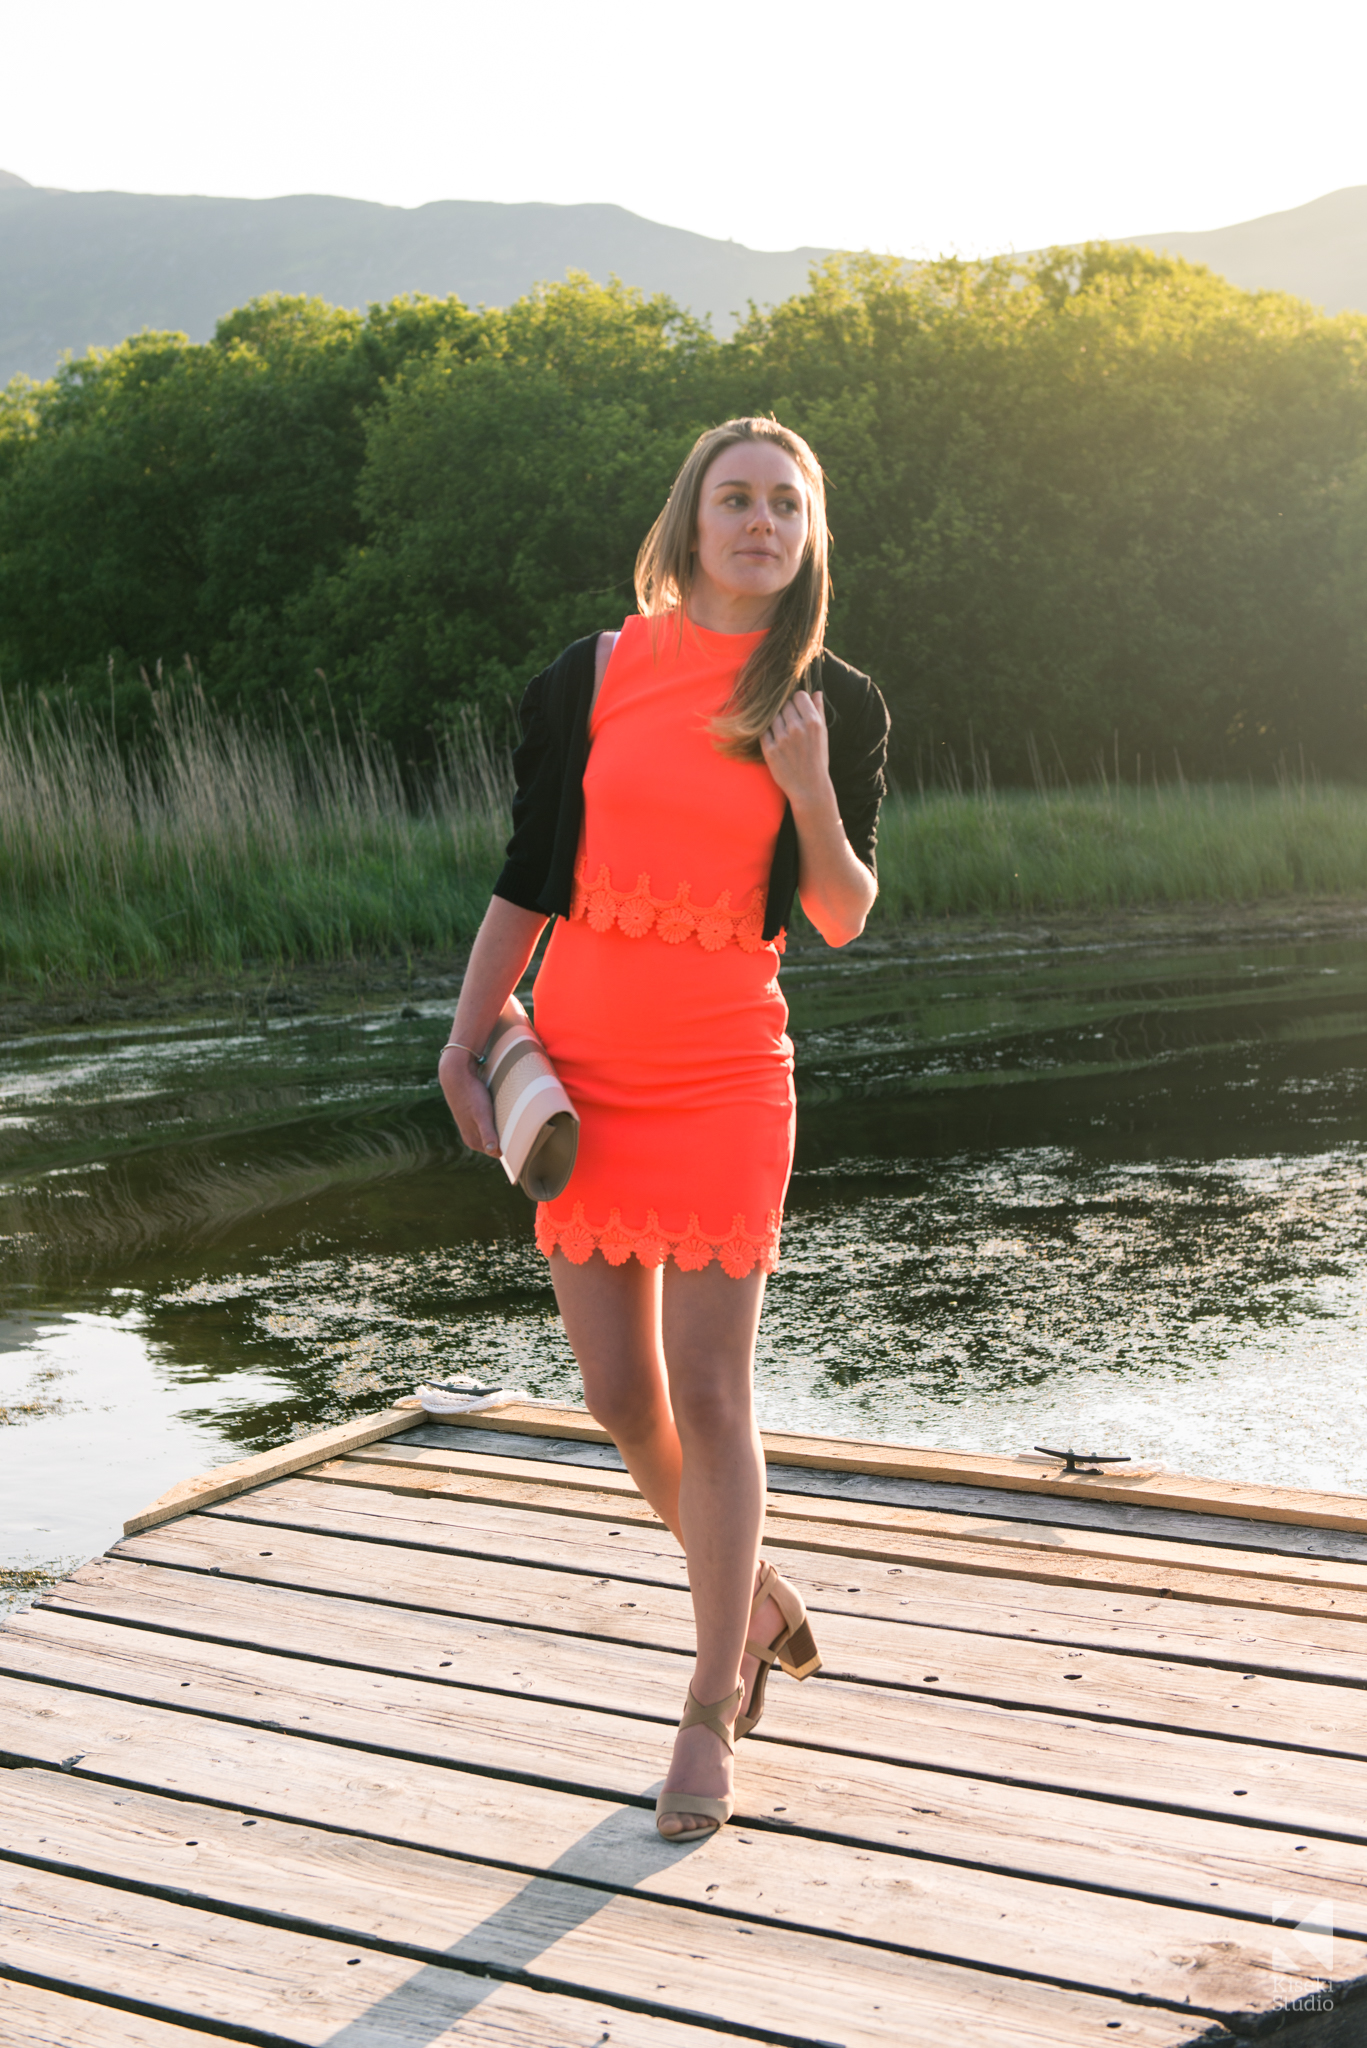 girlfriend-at-wedding-derwentwater-coral-dress-young-pretty